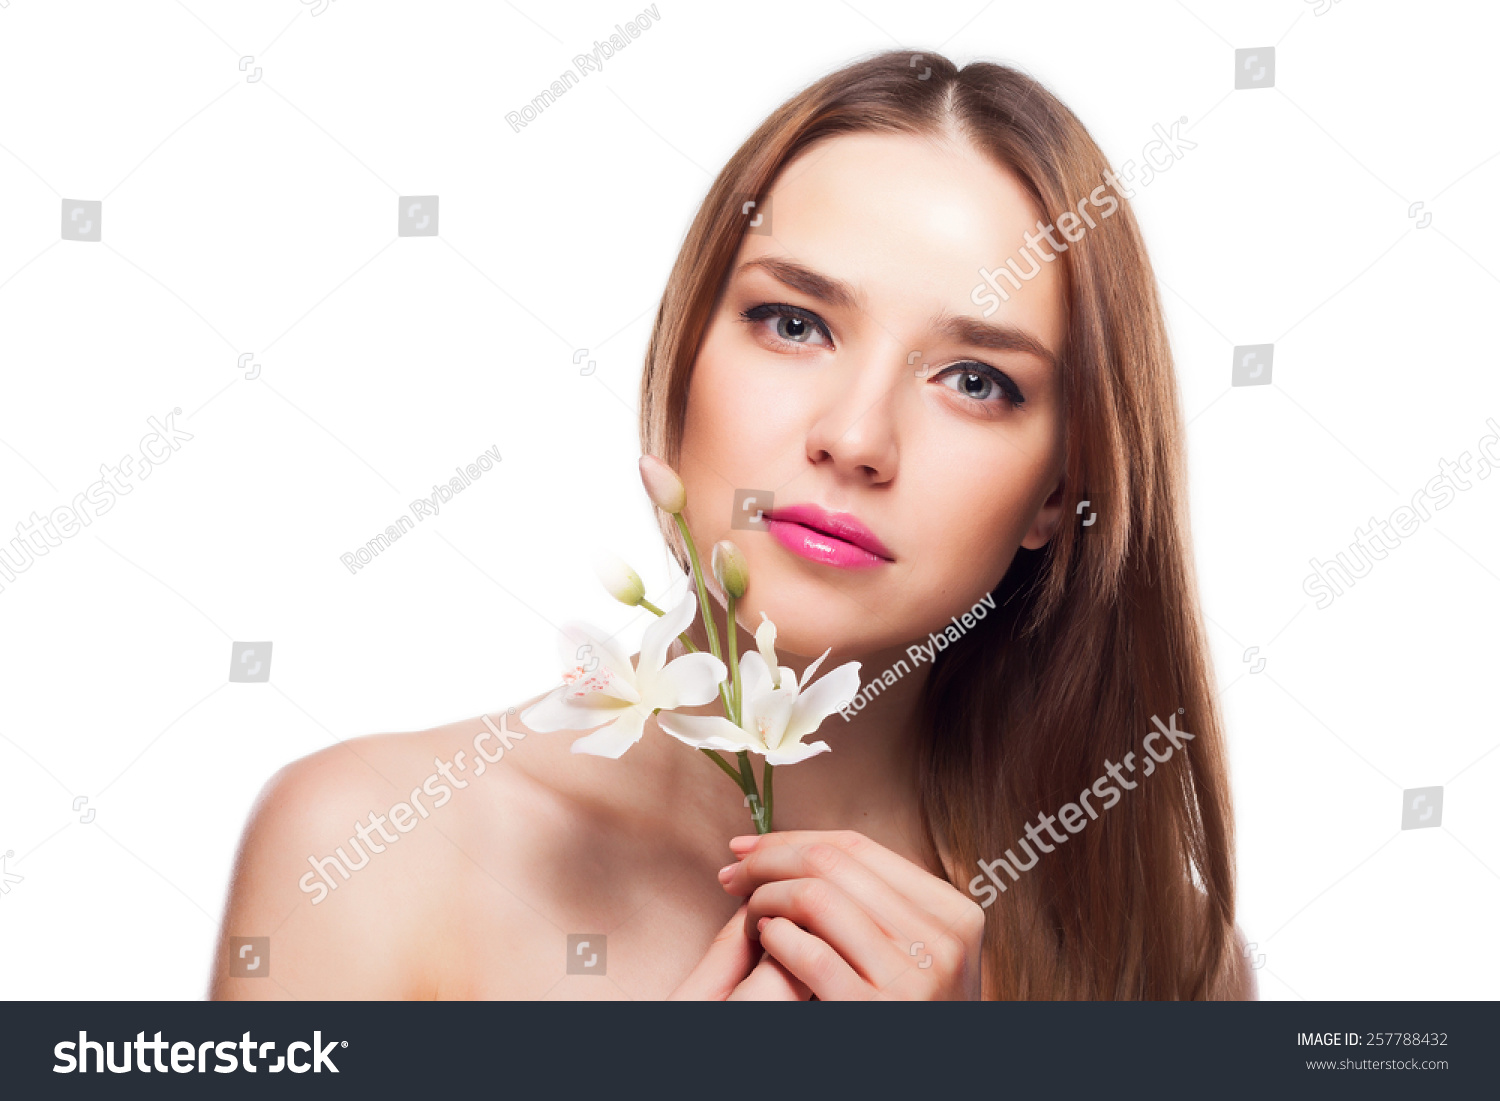 Beauty face young beautiful woman flower stock photo 257788432 beauty face of the young beautiful woman with flower izmirmasajfo Image collections